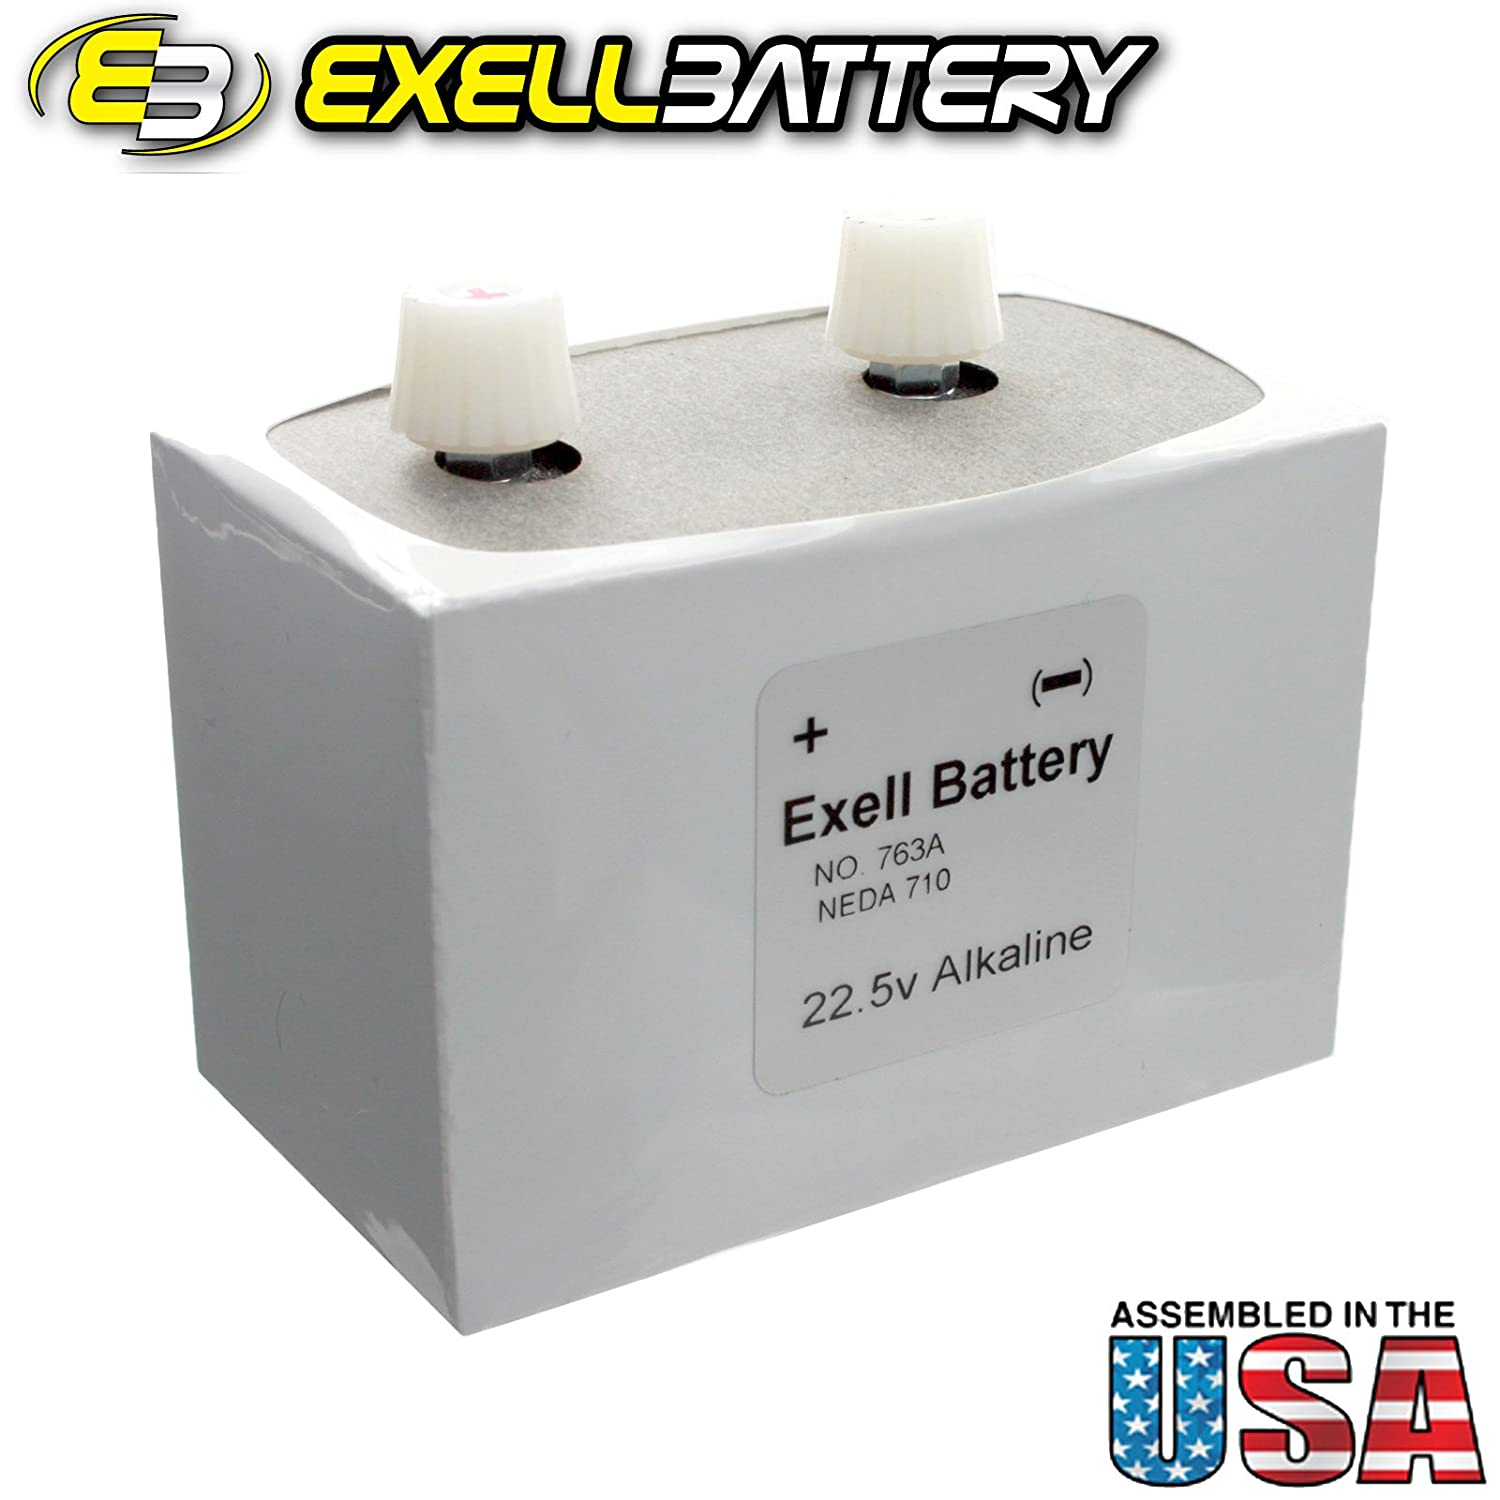 The 763 is a battery replacement for the NEDA 710 battery